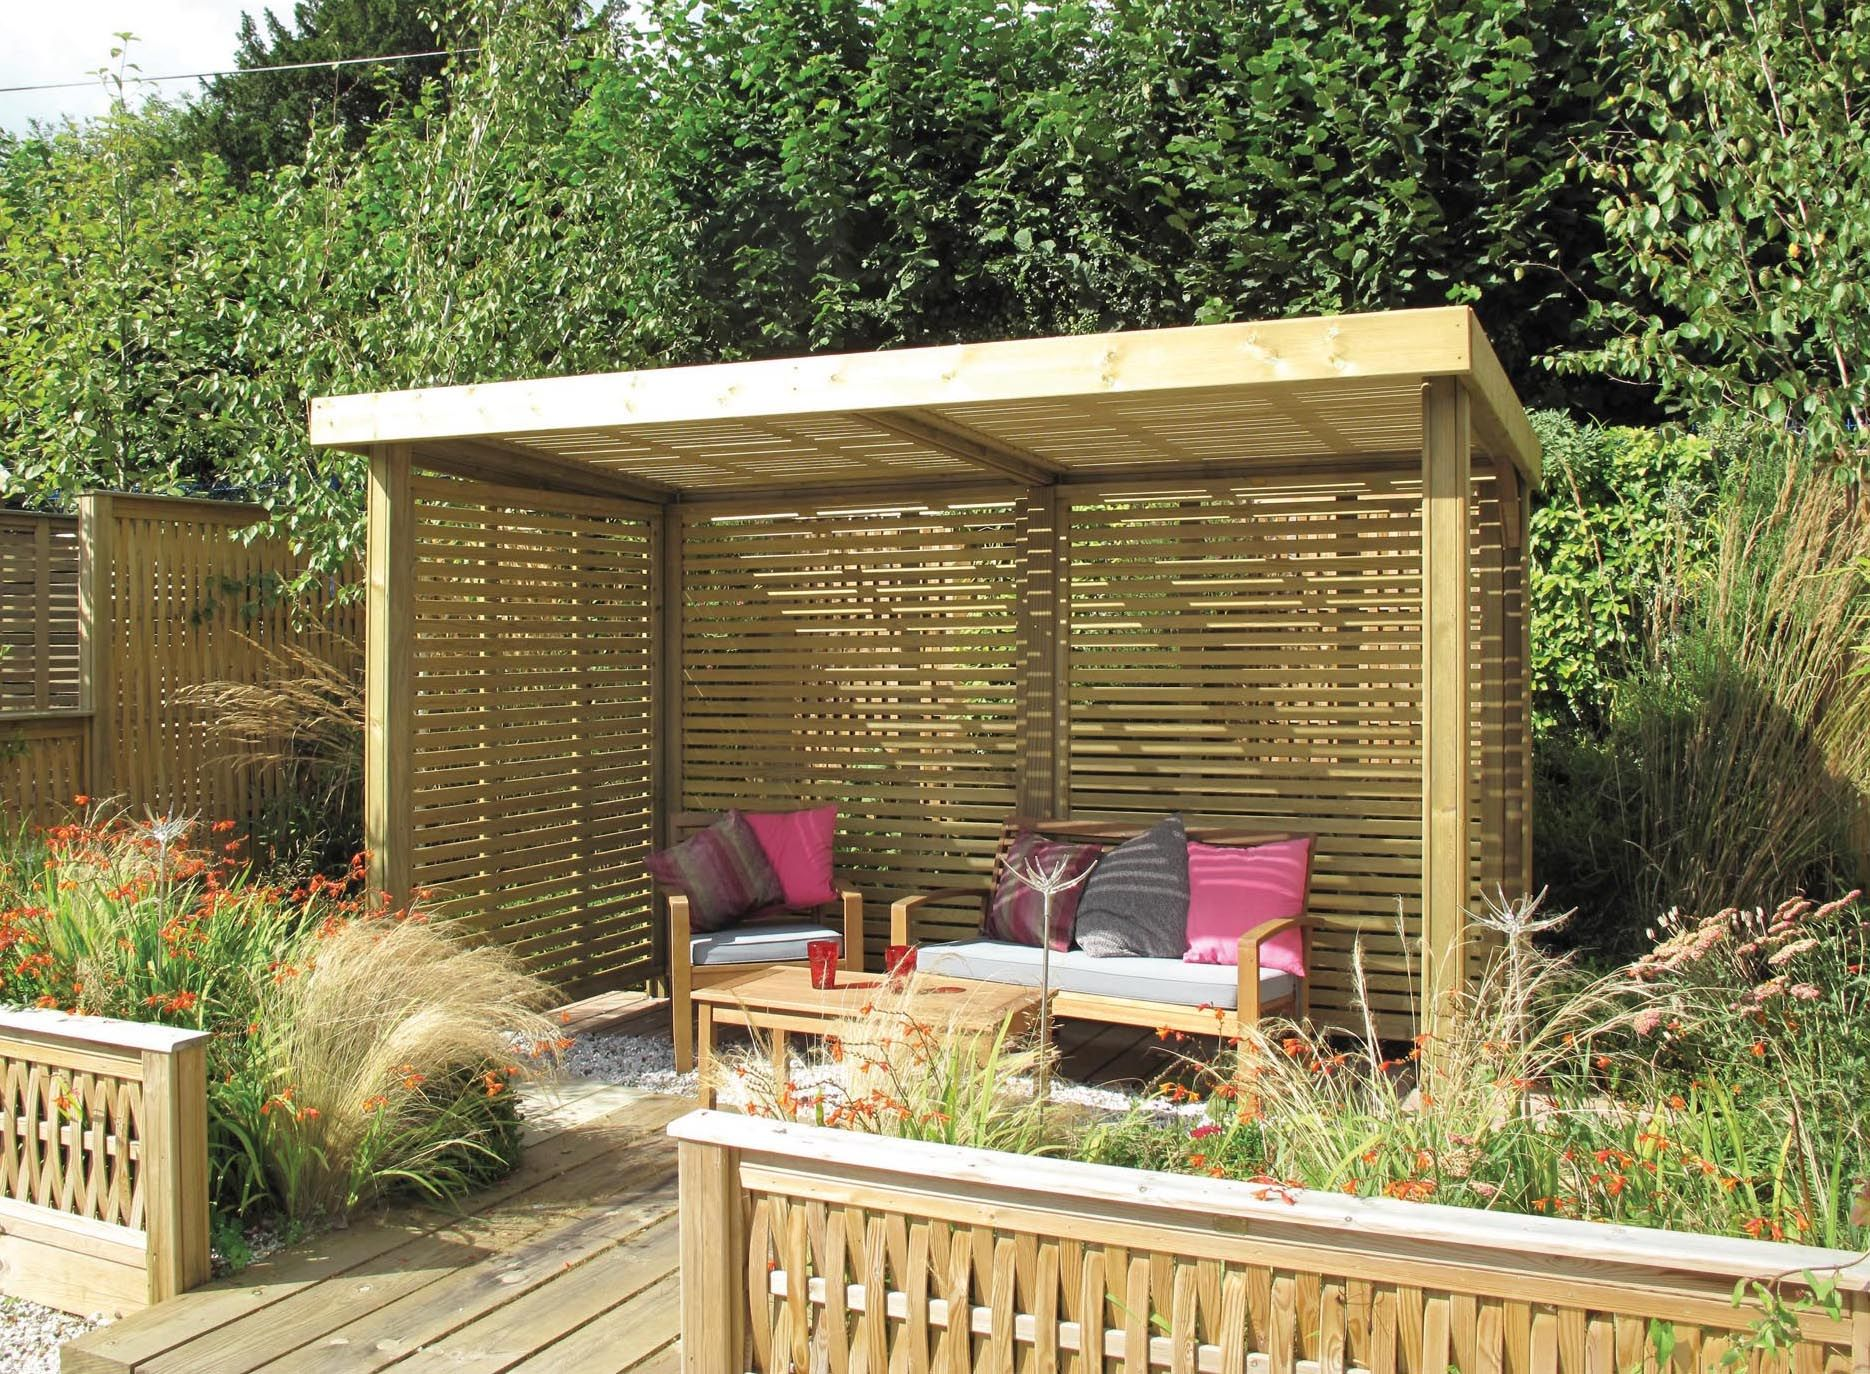 Retreat Shelter From Jacksons   Designed Using Our Popular Venetian Panels  For The Sides And Roof #garden #retreat #home #shelter